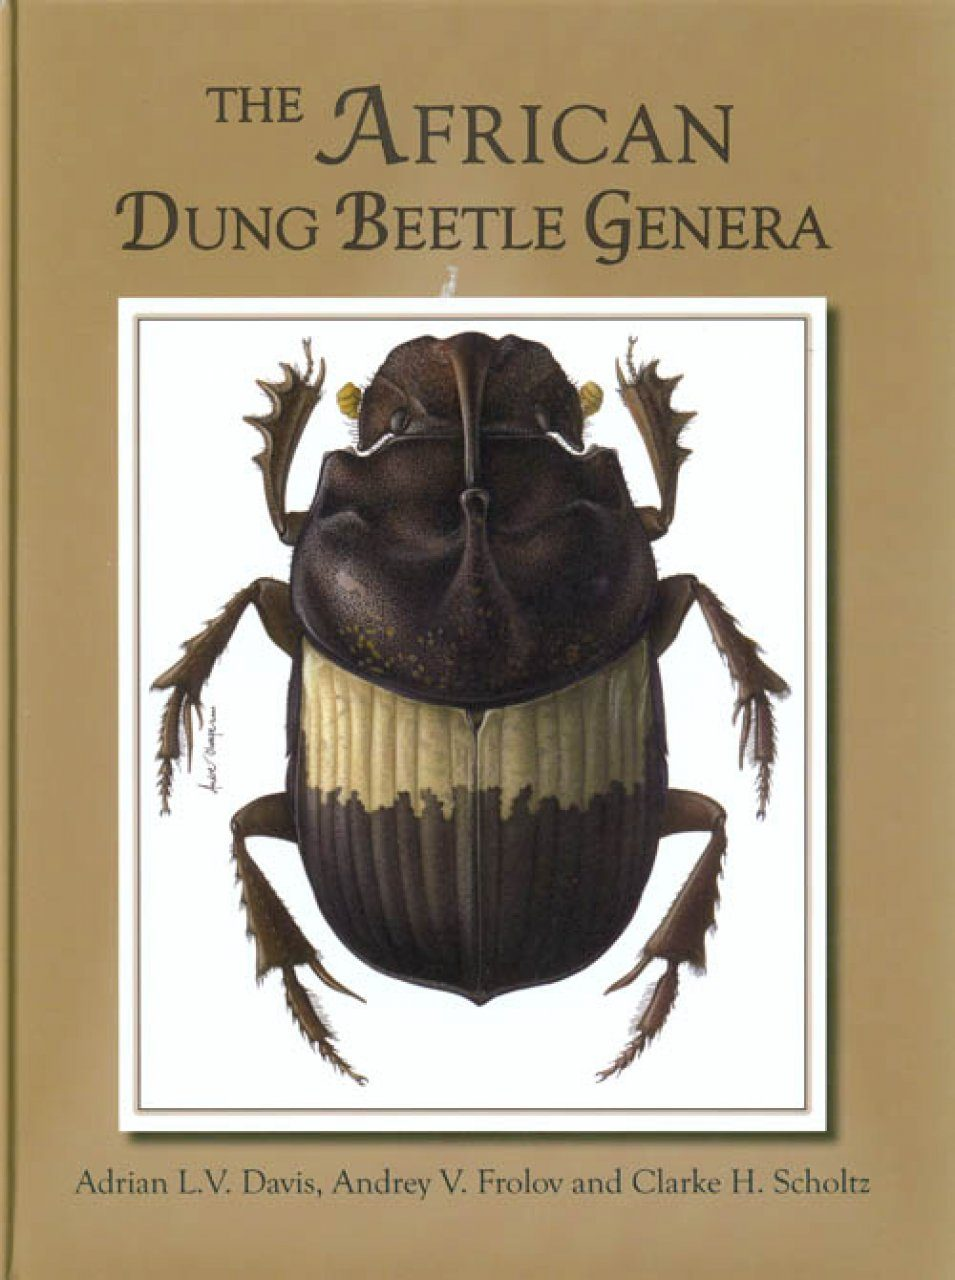 The African Dung Beetle Genera